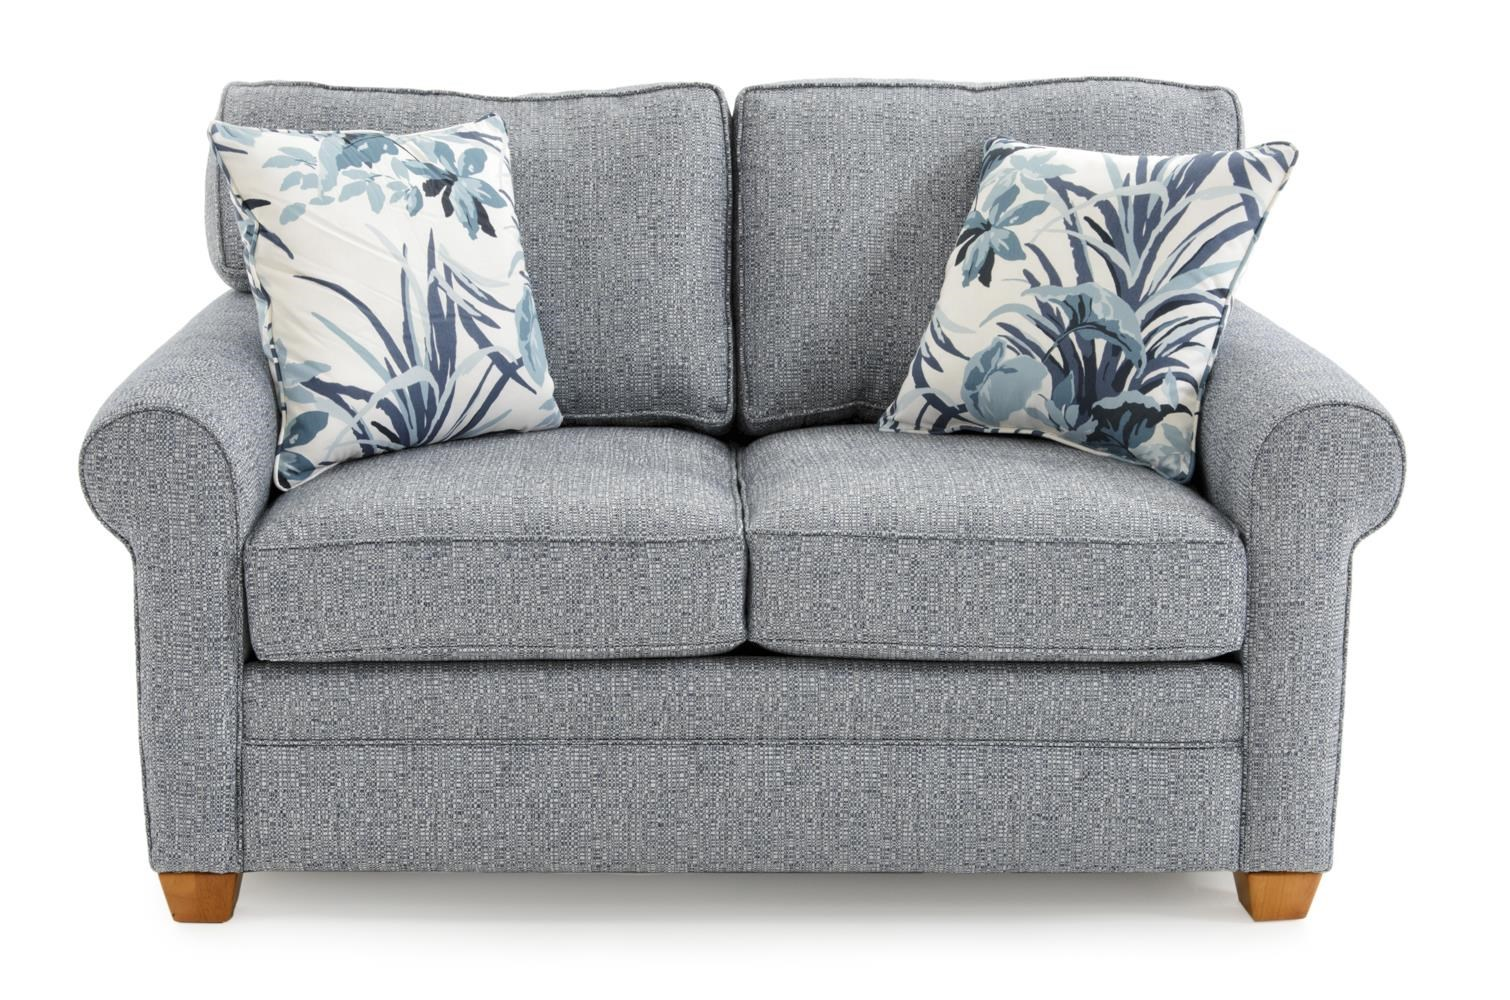 Capris Furniture 402 Loveseat - Item Number: L402 ALLOX OCEAN